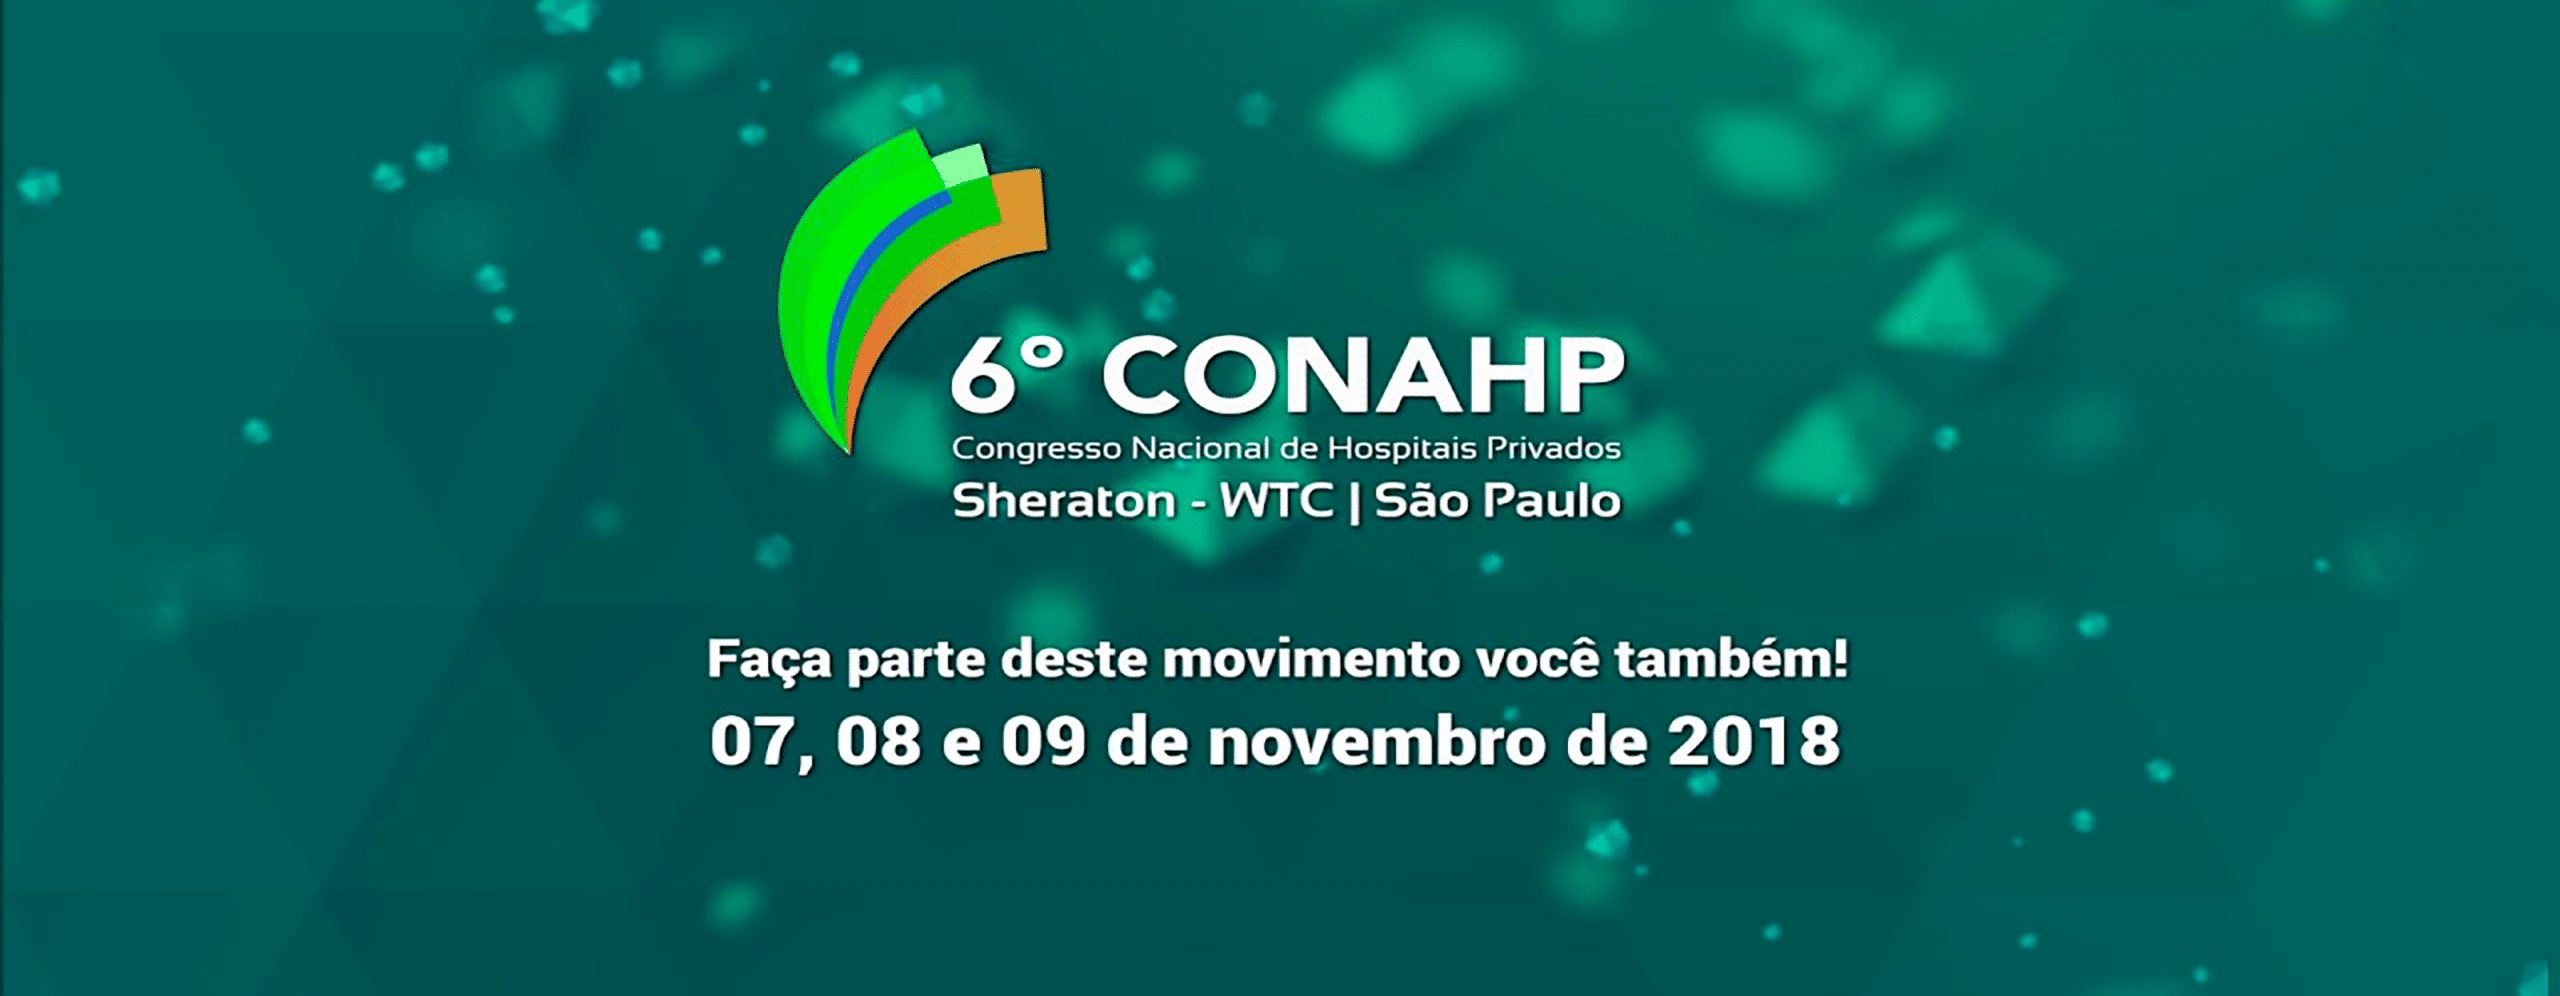 SISQUAL will be present at CONAHP